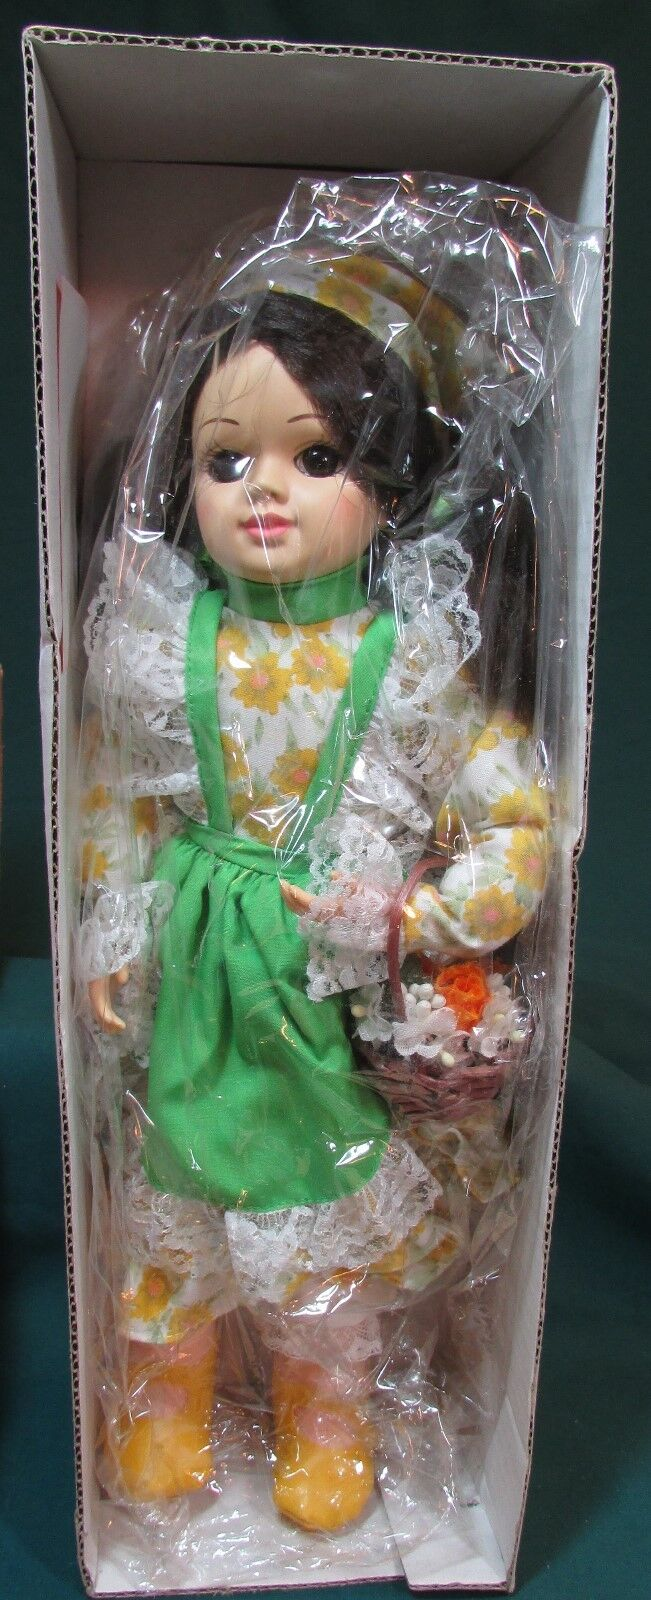 14 Mary Mary Brinns Collectible Edition Doll 1988 Excellent Cond - $7.50